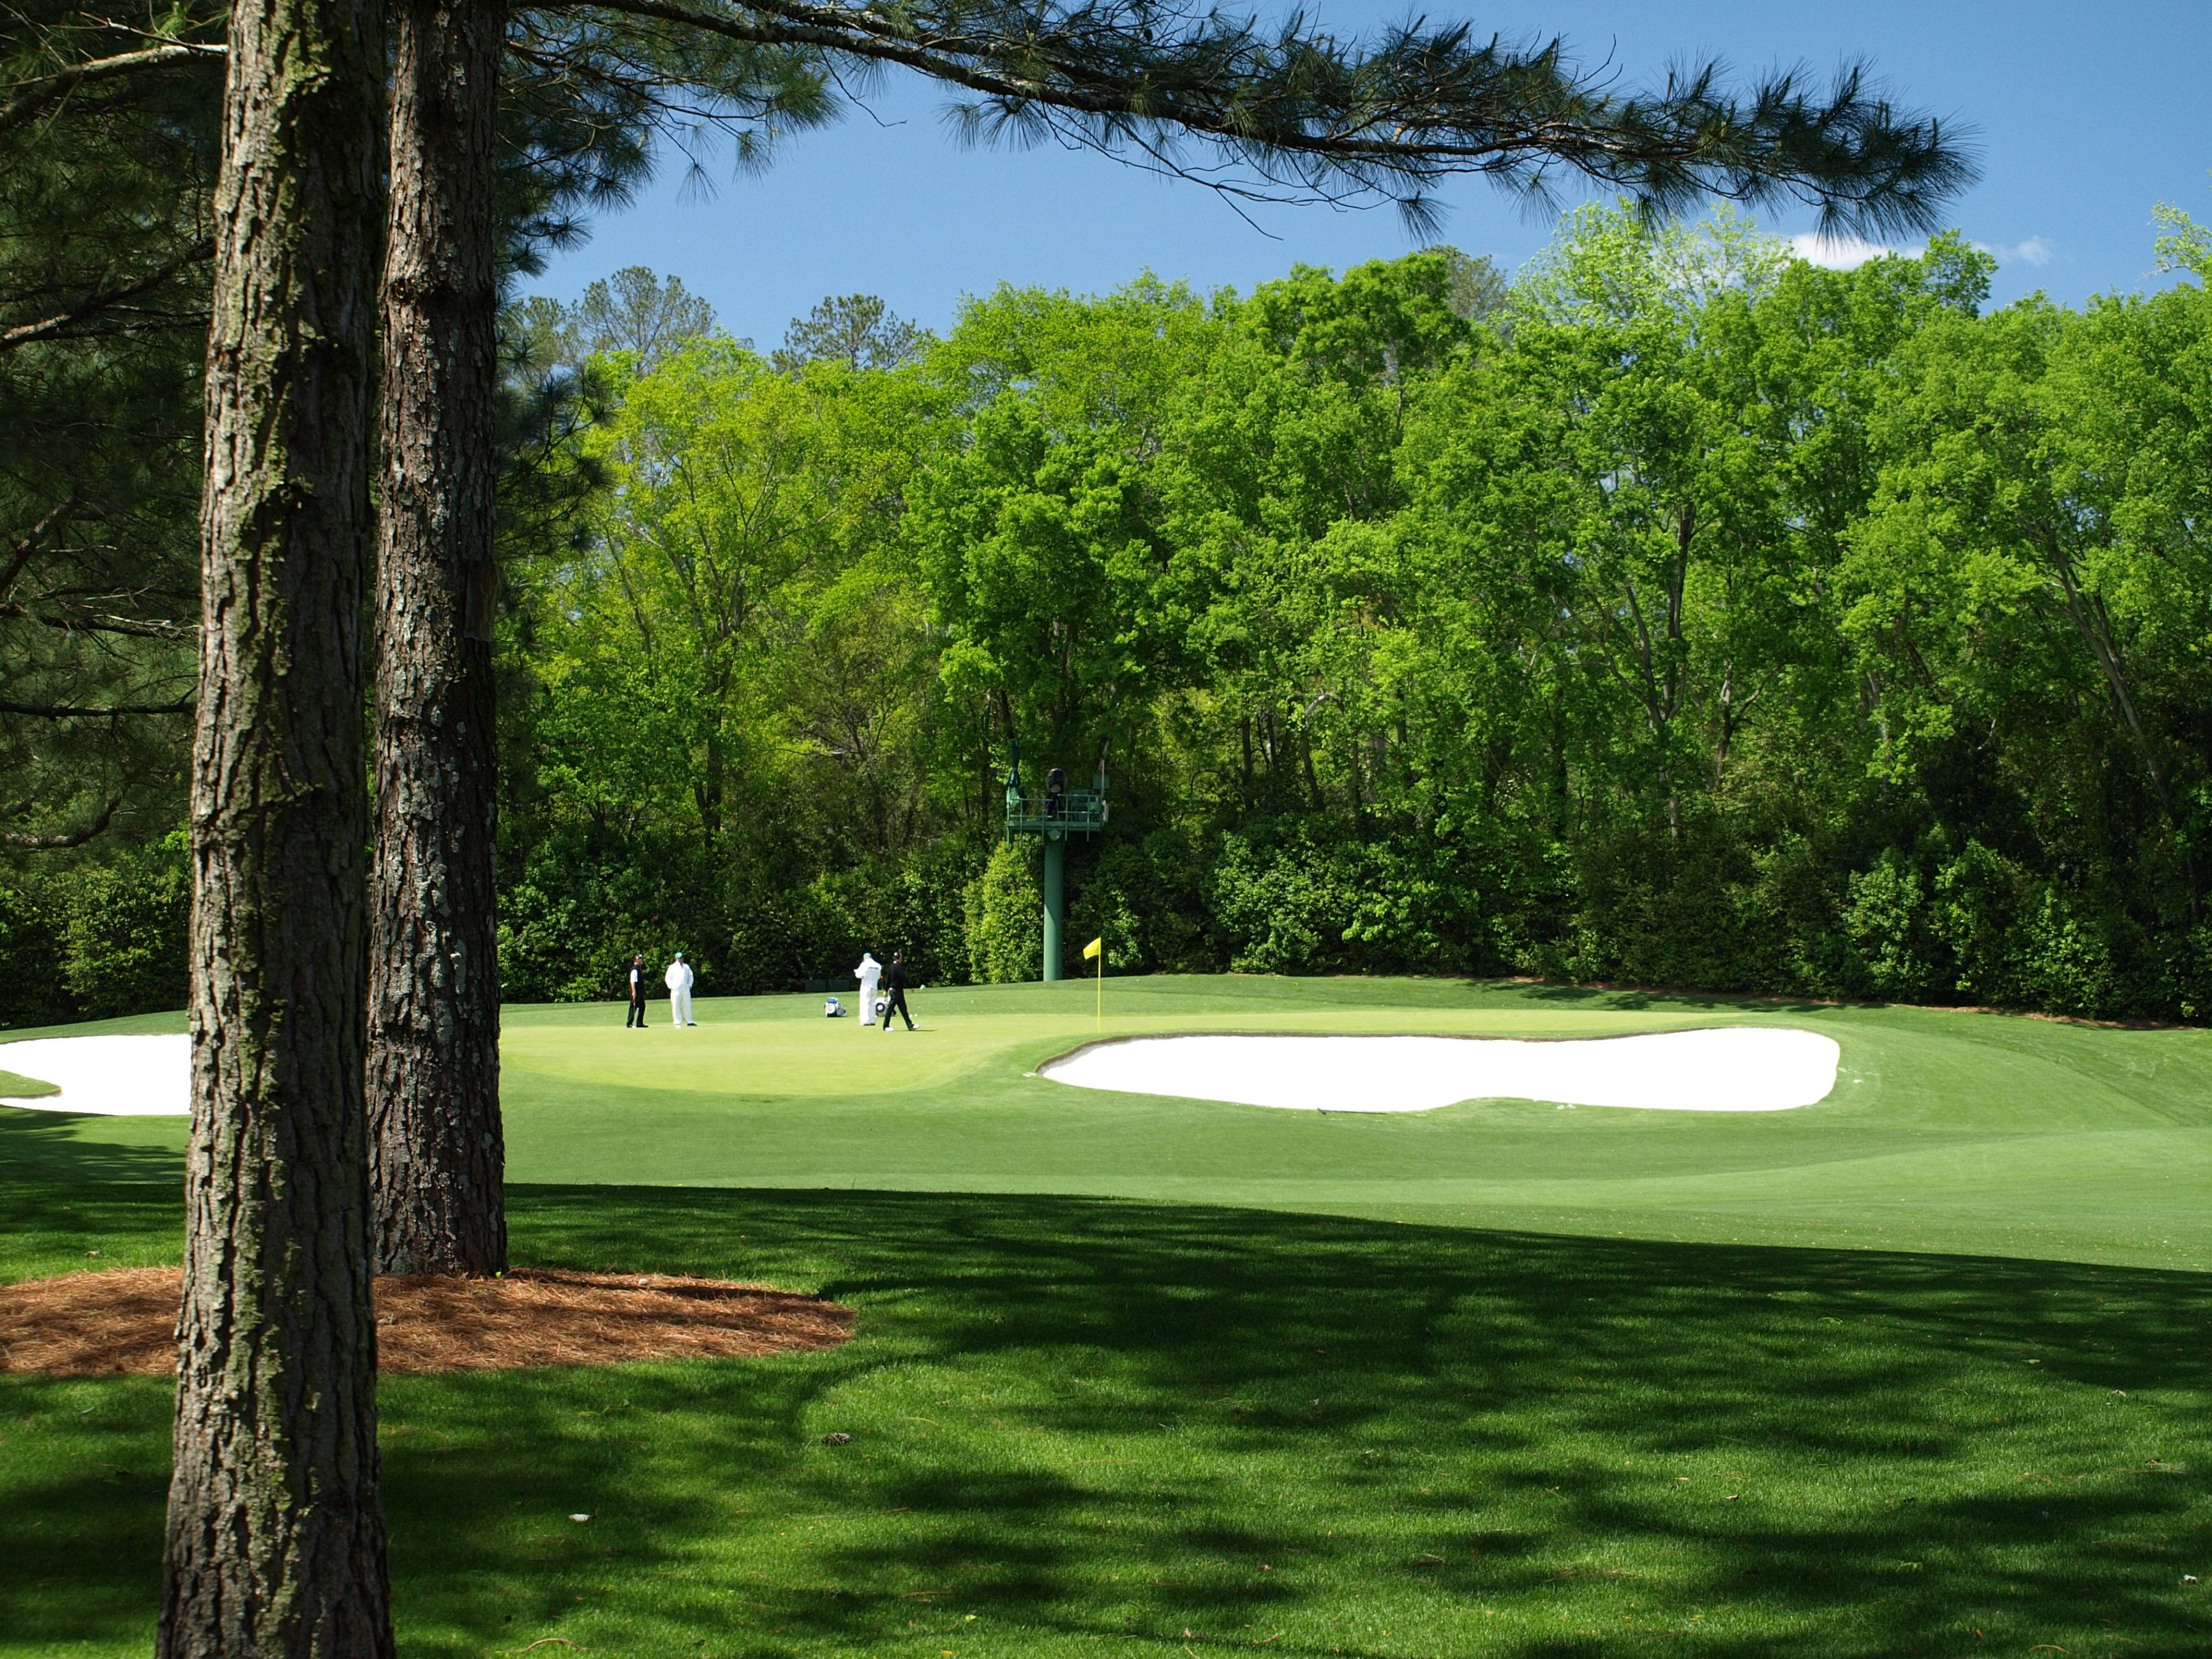 The 4th green at Augusta National Golf Club